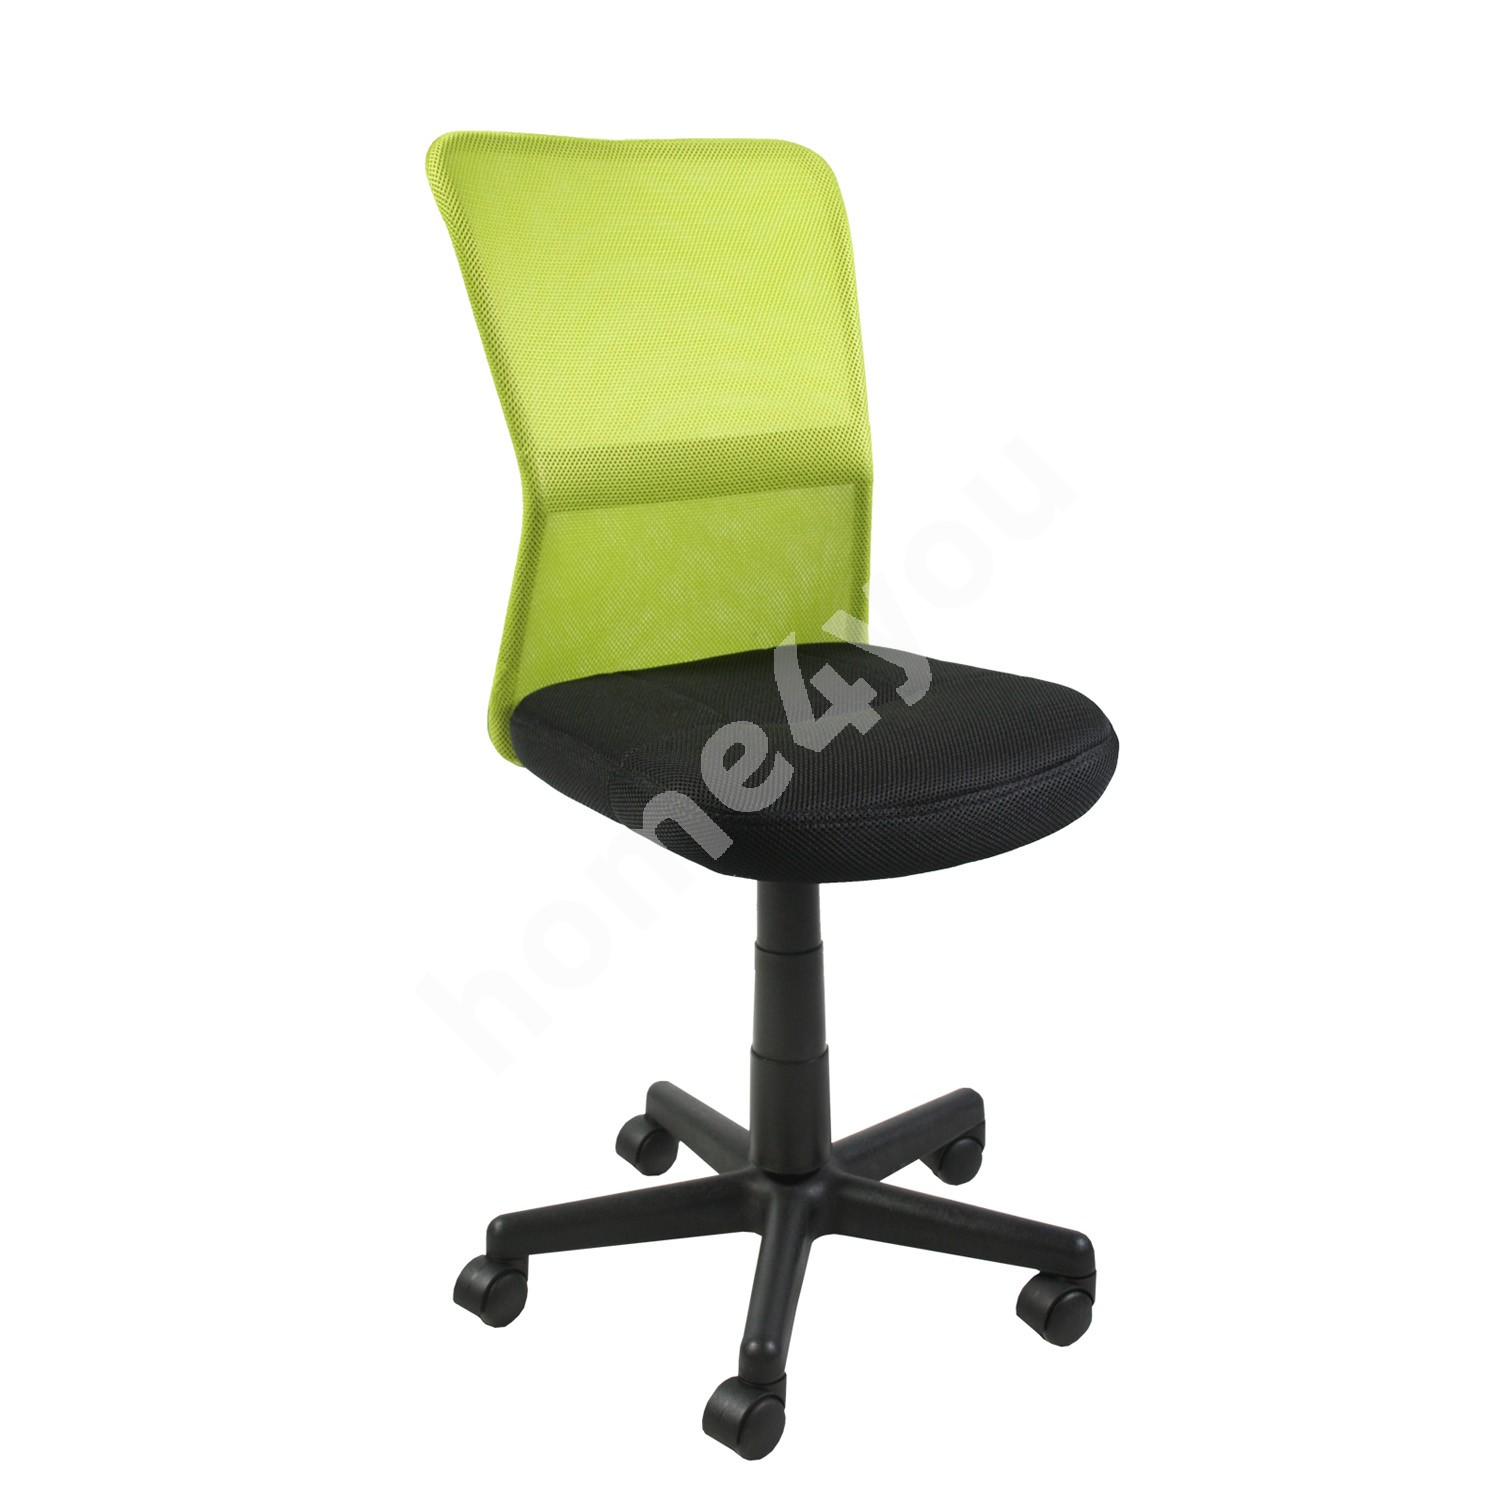 Task chair BELICE 41xD42xH83-93cm, seat: fabric, color: black, back rest: mesh, color: green